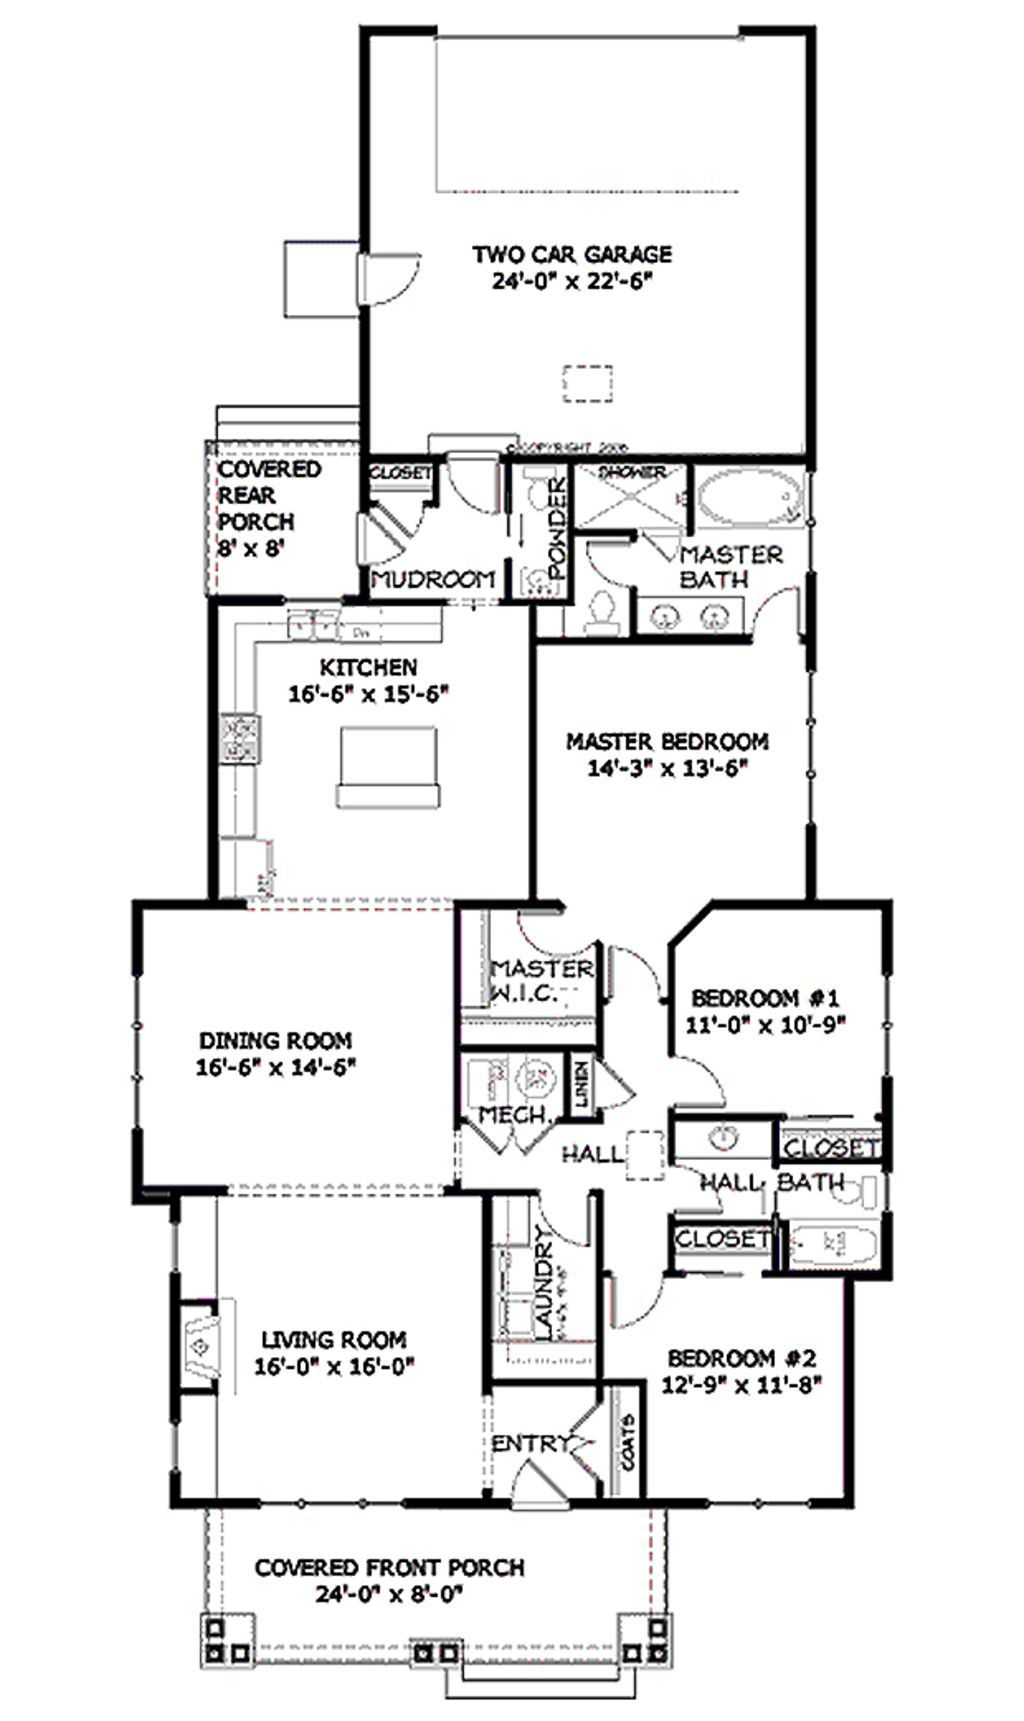 Bungalow Style House Plan 3 Beds 2 5 Baths 1915 Sq Ft Plan 434 3 Main Floor Pla Bungalow Style House Plans Craftsman Style House Plans Craftsman Floor Plans